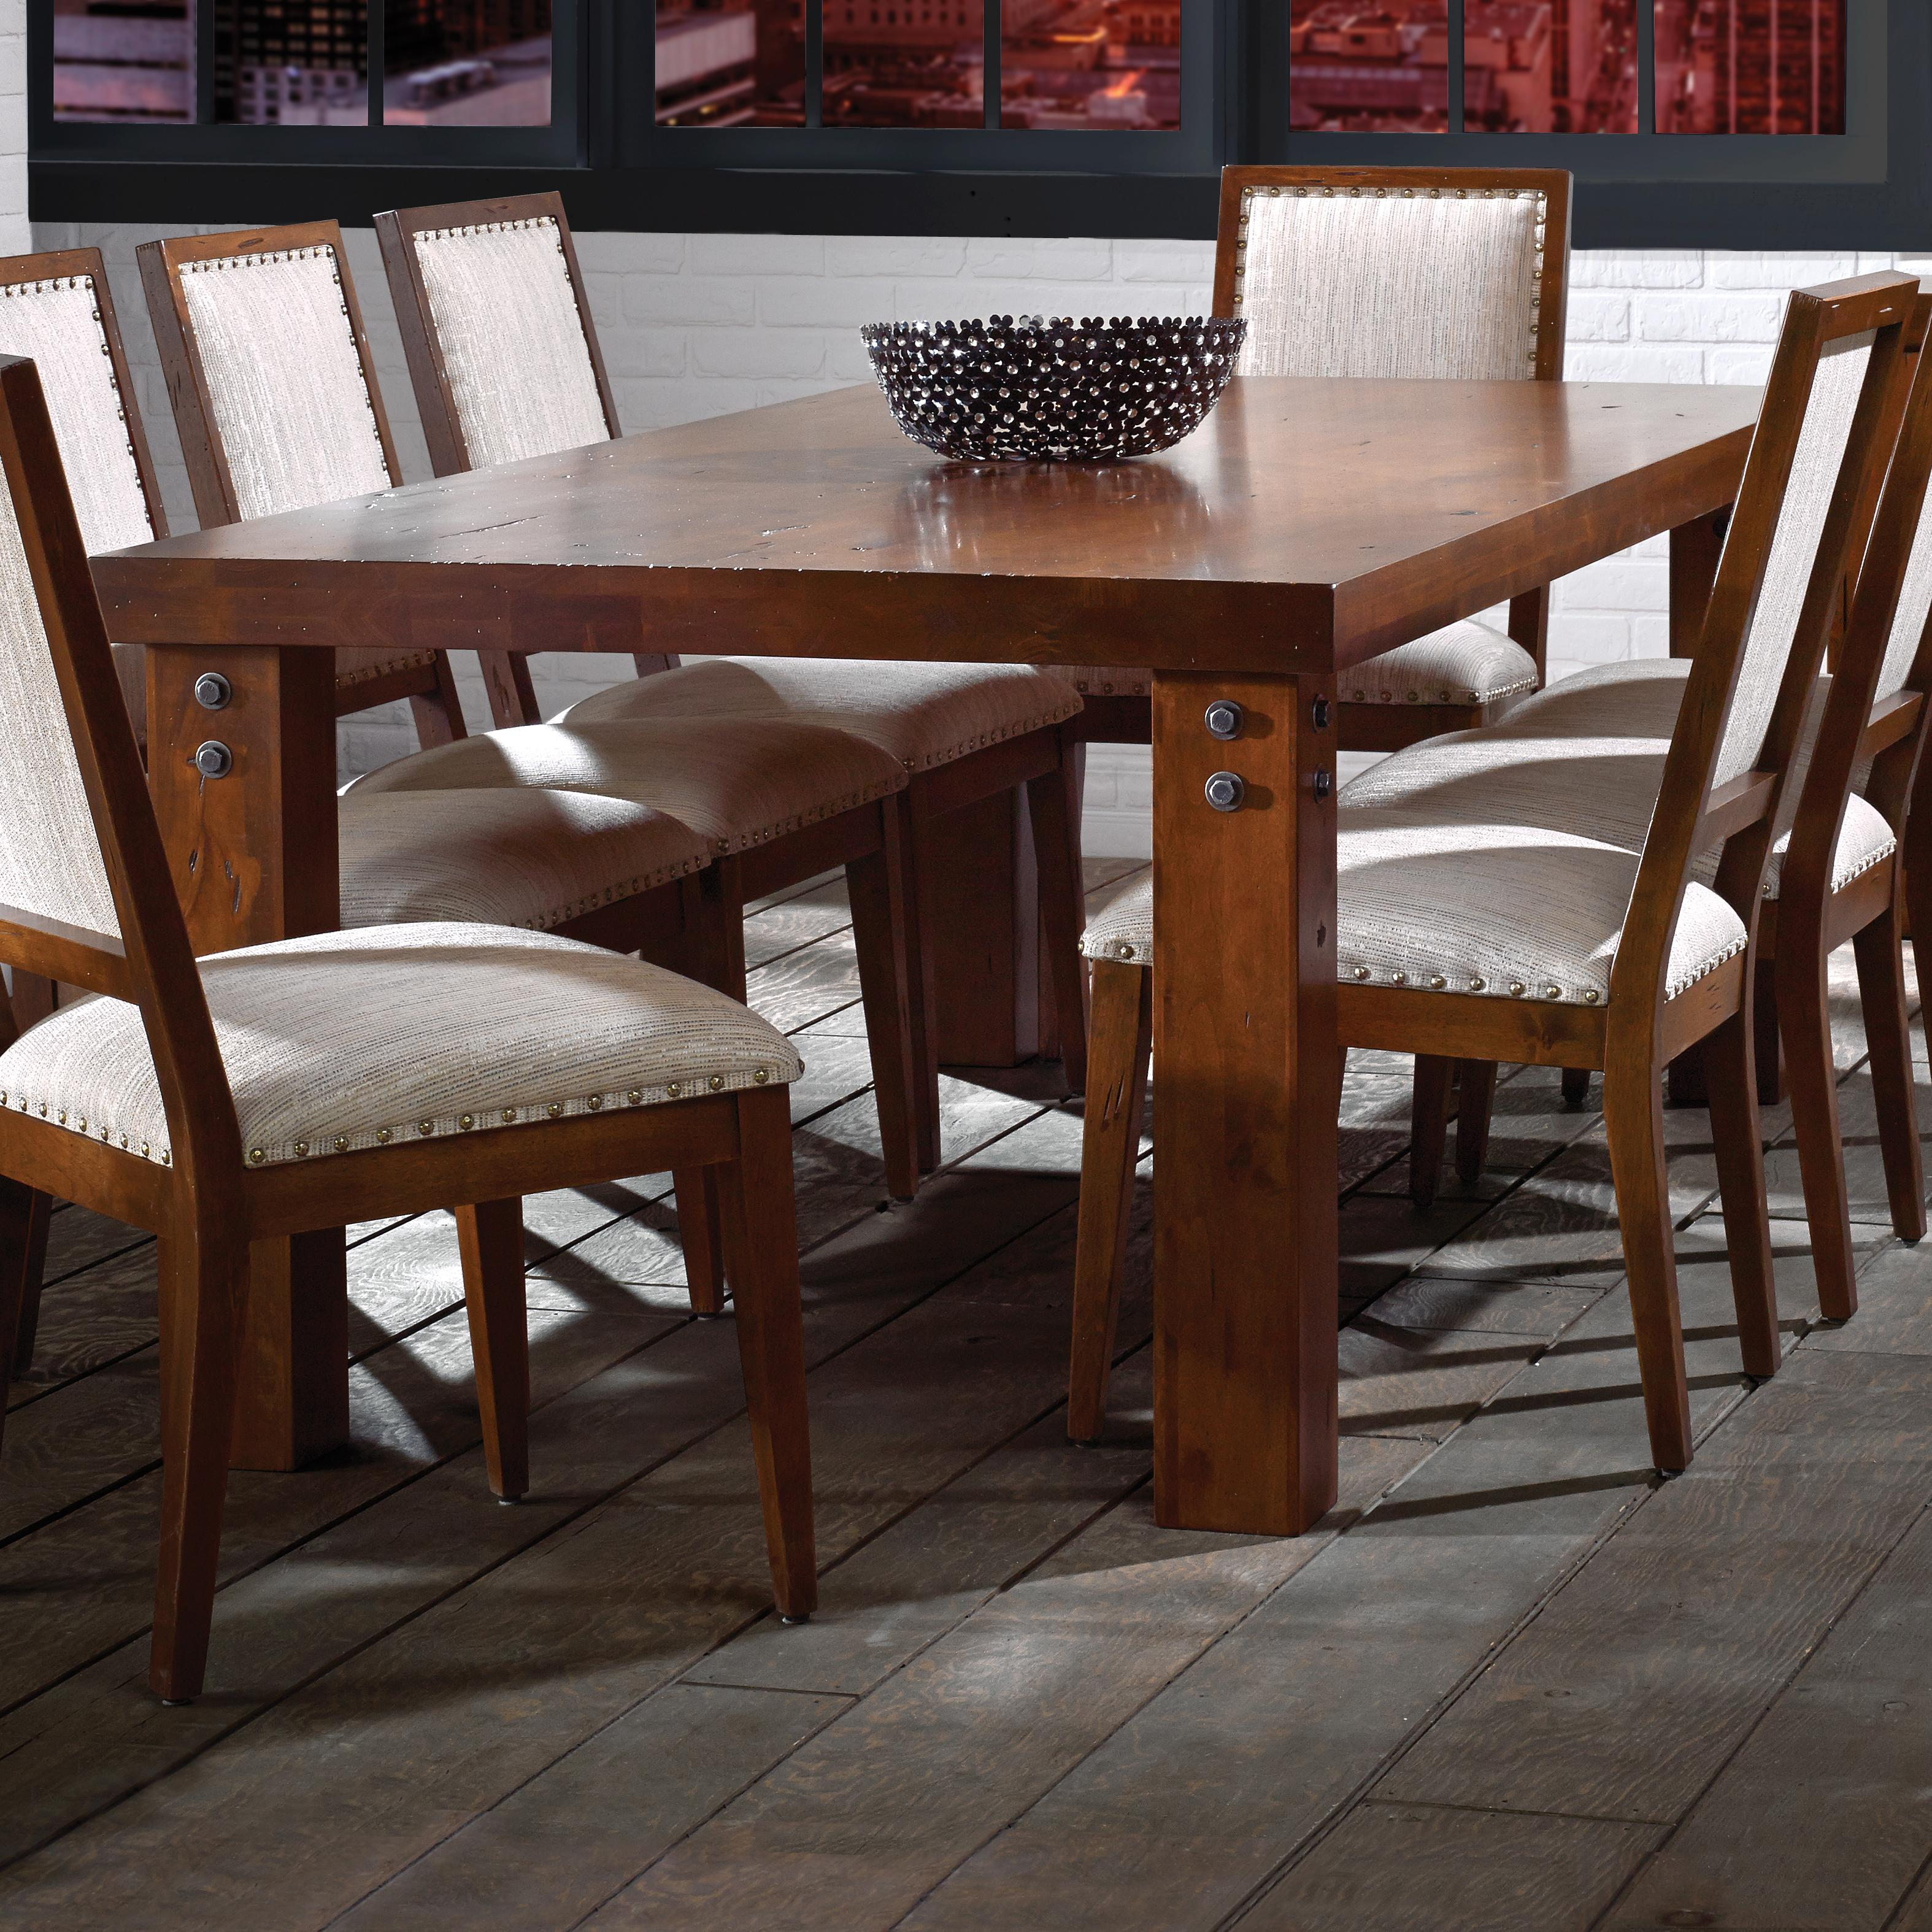 canadel loft custom dining tre0428833narpknf customizable rectangular table with accent rivets. Black Bedroom Furniture Sets. Home Design Ideas